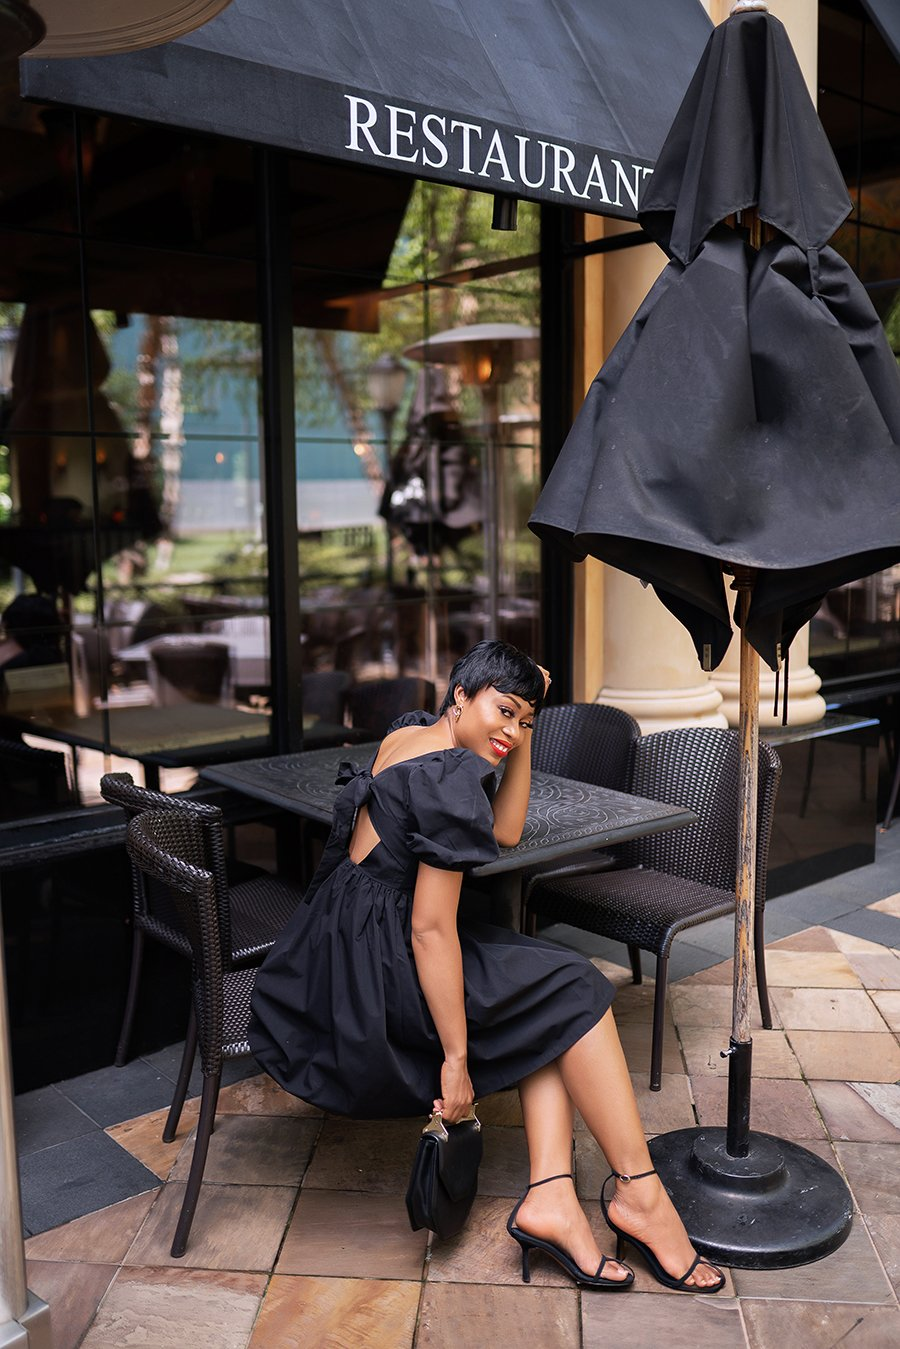 stella-adewunmi-of-jadore-fashion-blog-shares-HMxme-perfect-end-of-summer-little-black-dress